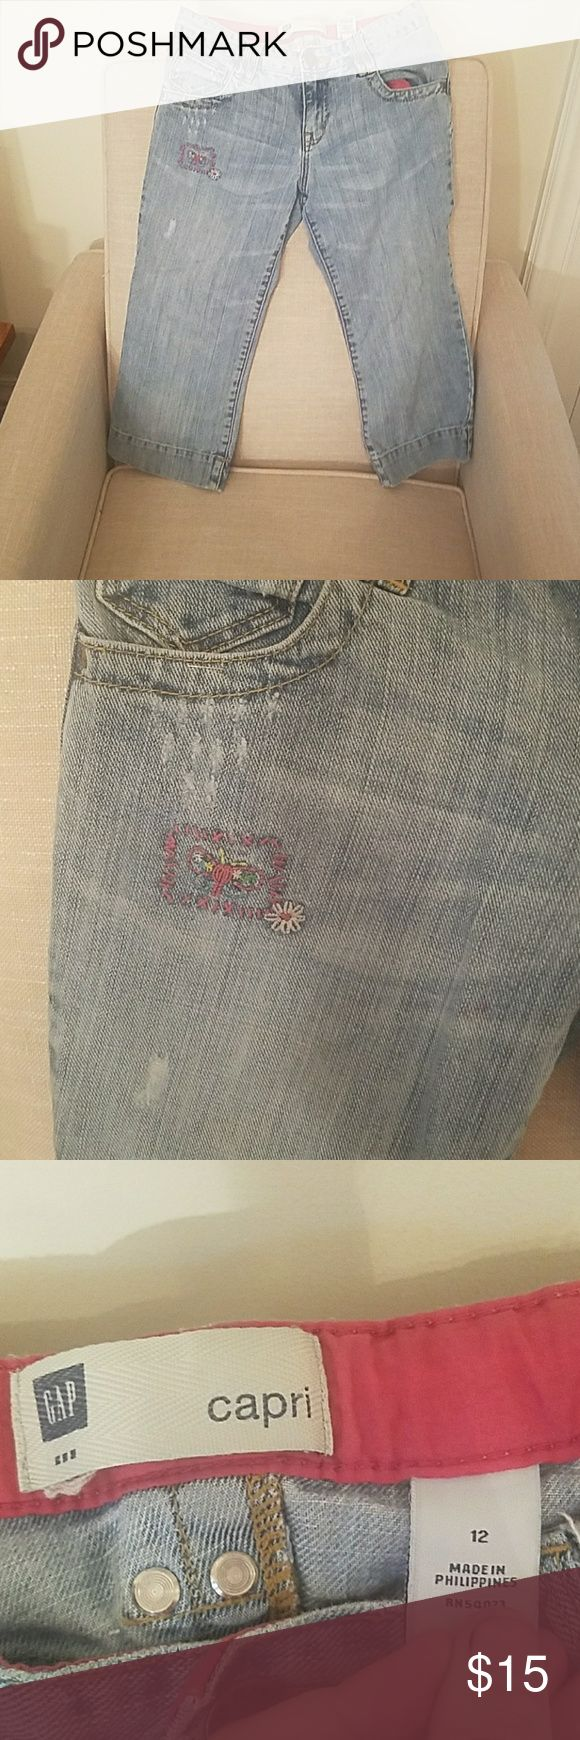 Gap Kids Capris Size 12 Cute Gap Kids Capris Size 12! They have a couple cute patchwork pieces! Only worn a handful of times!!! GAP Bottoms Jeans